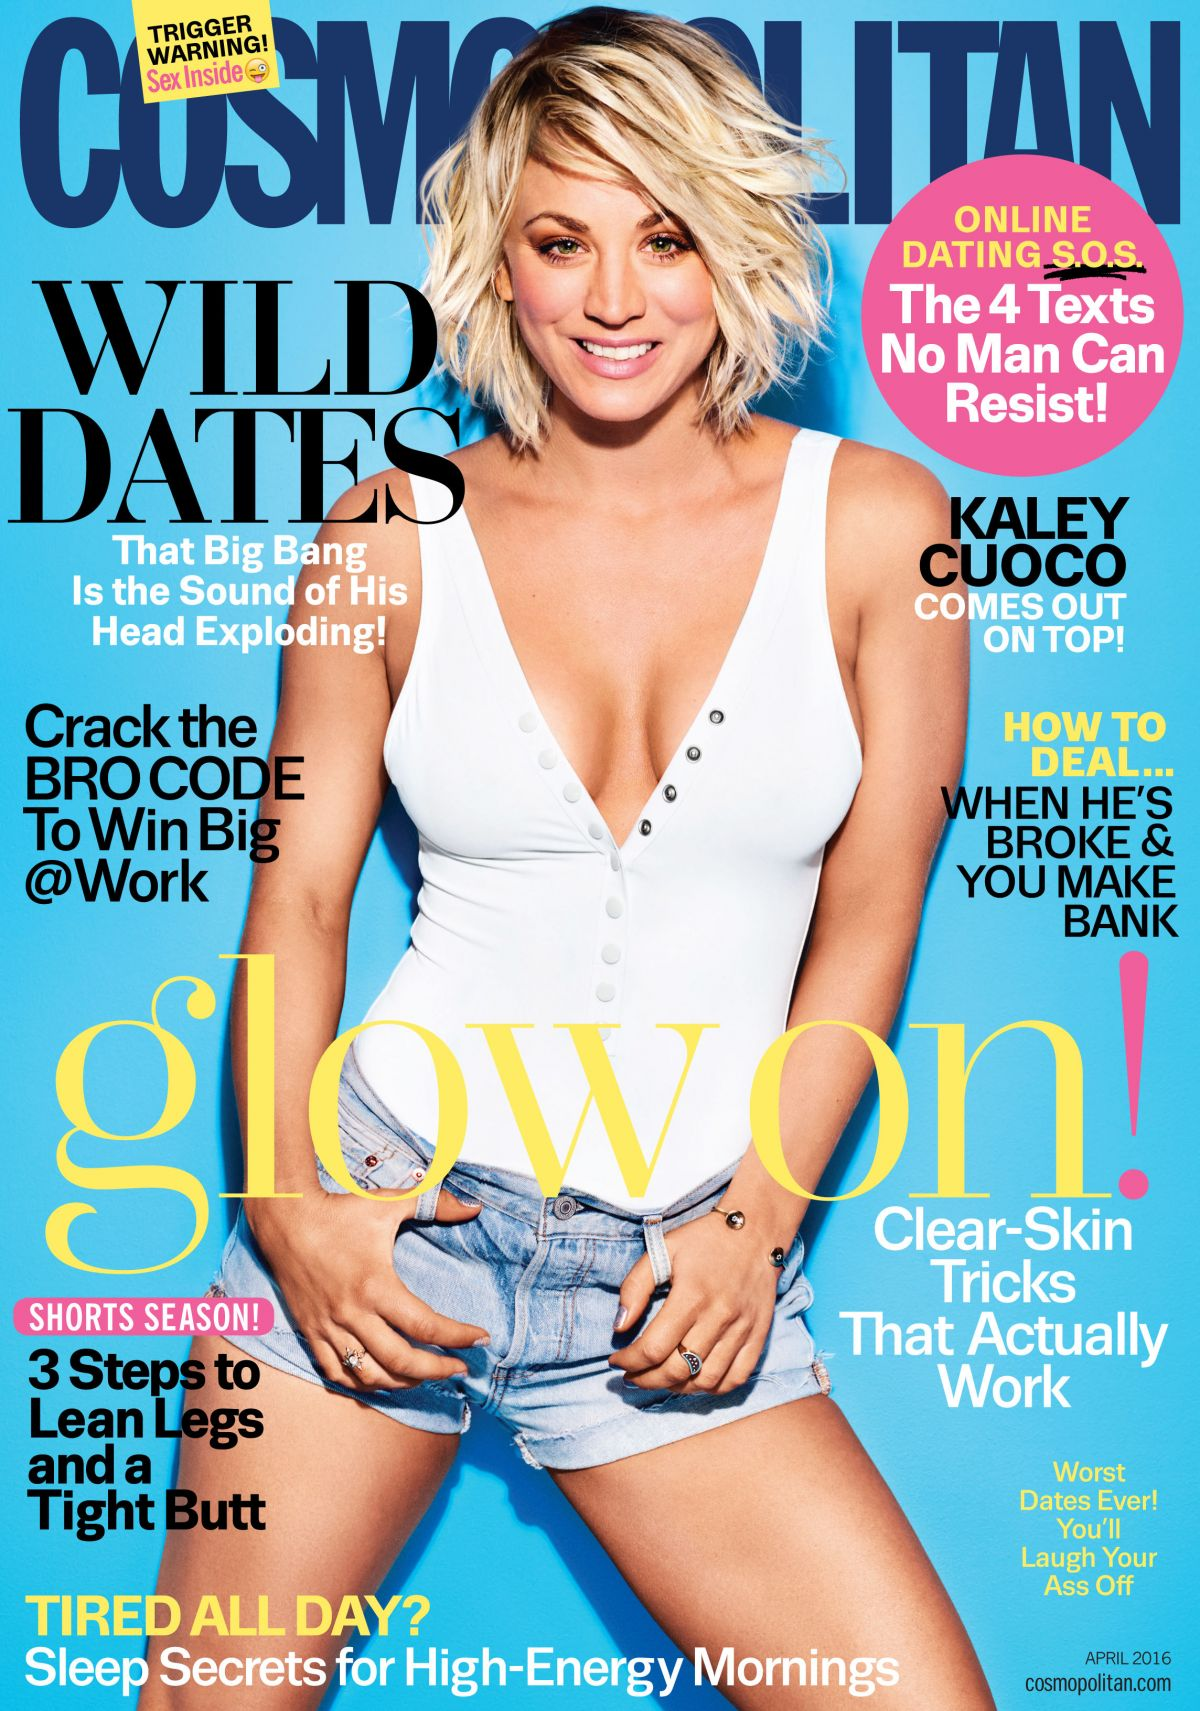 KALEY CUOCO in Cosmopolitan Magazine, April 2016 Issue ... Hayden Panettiere Fansite